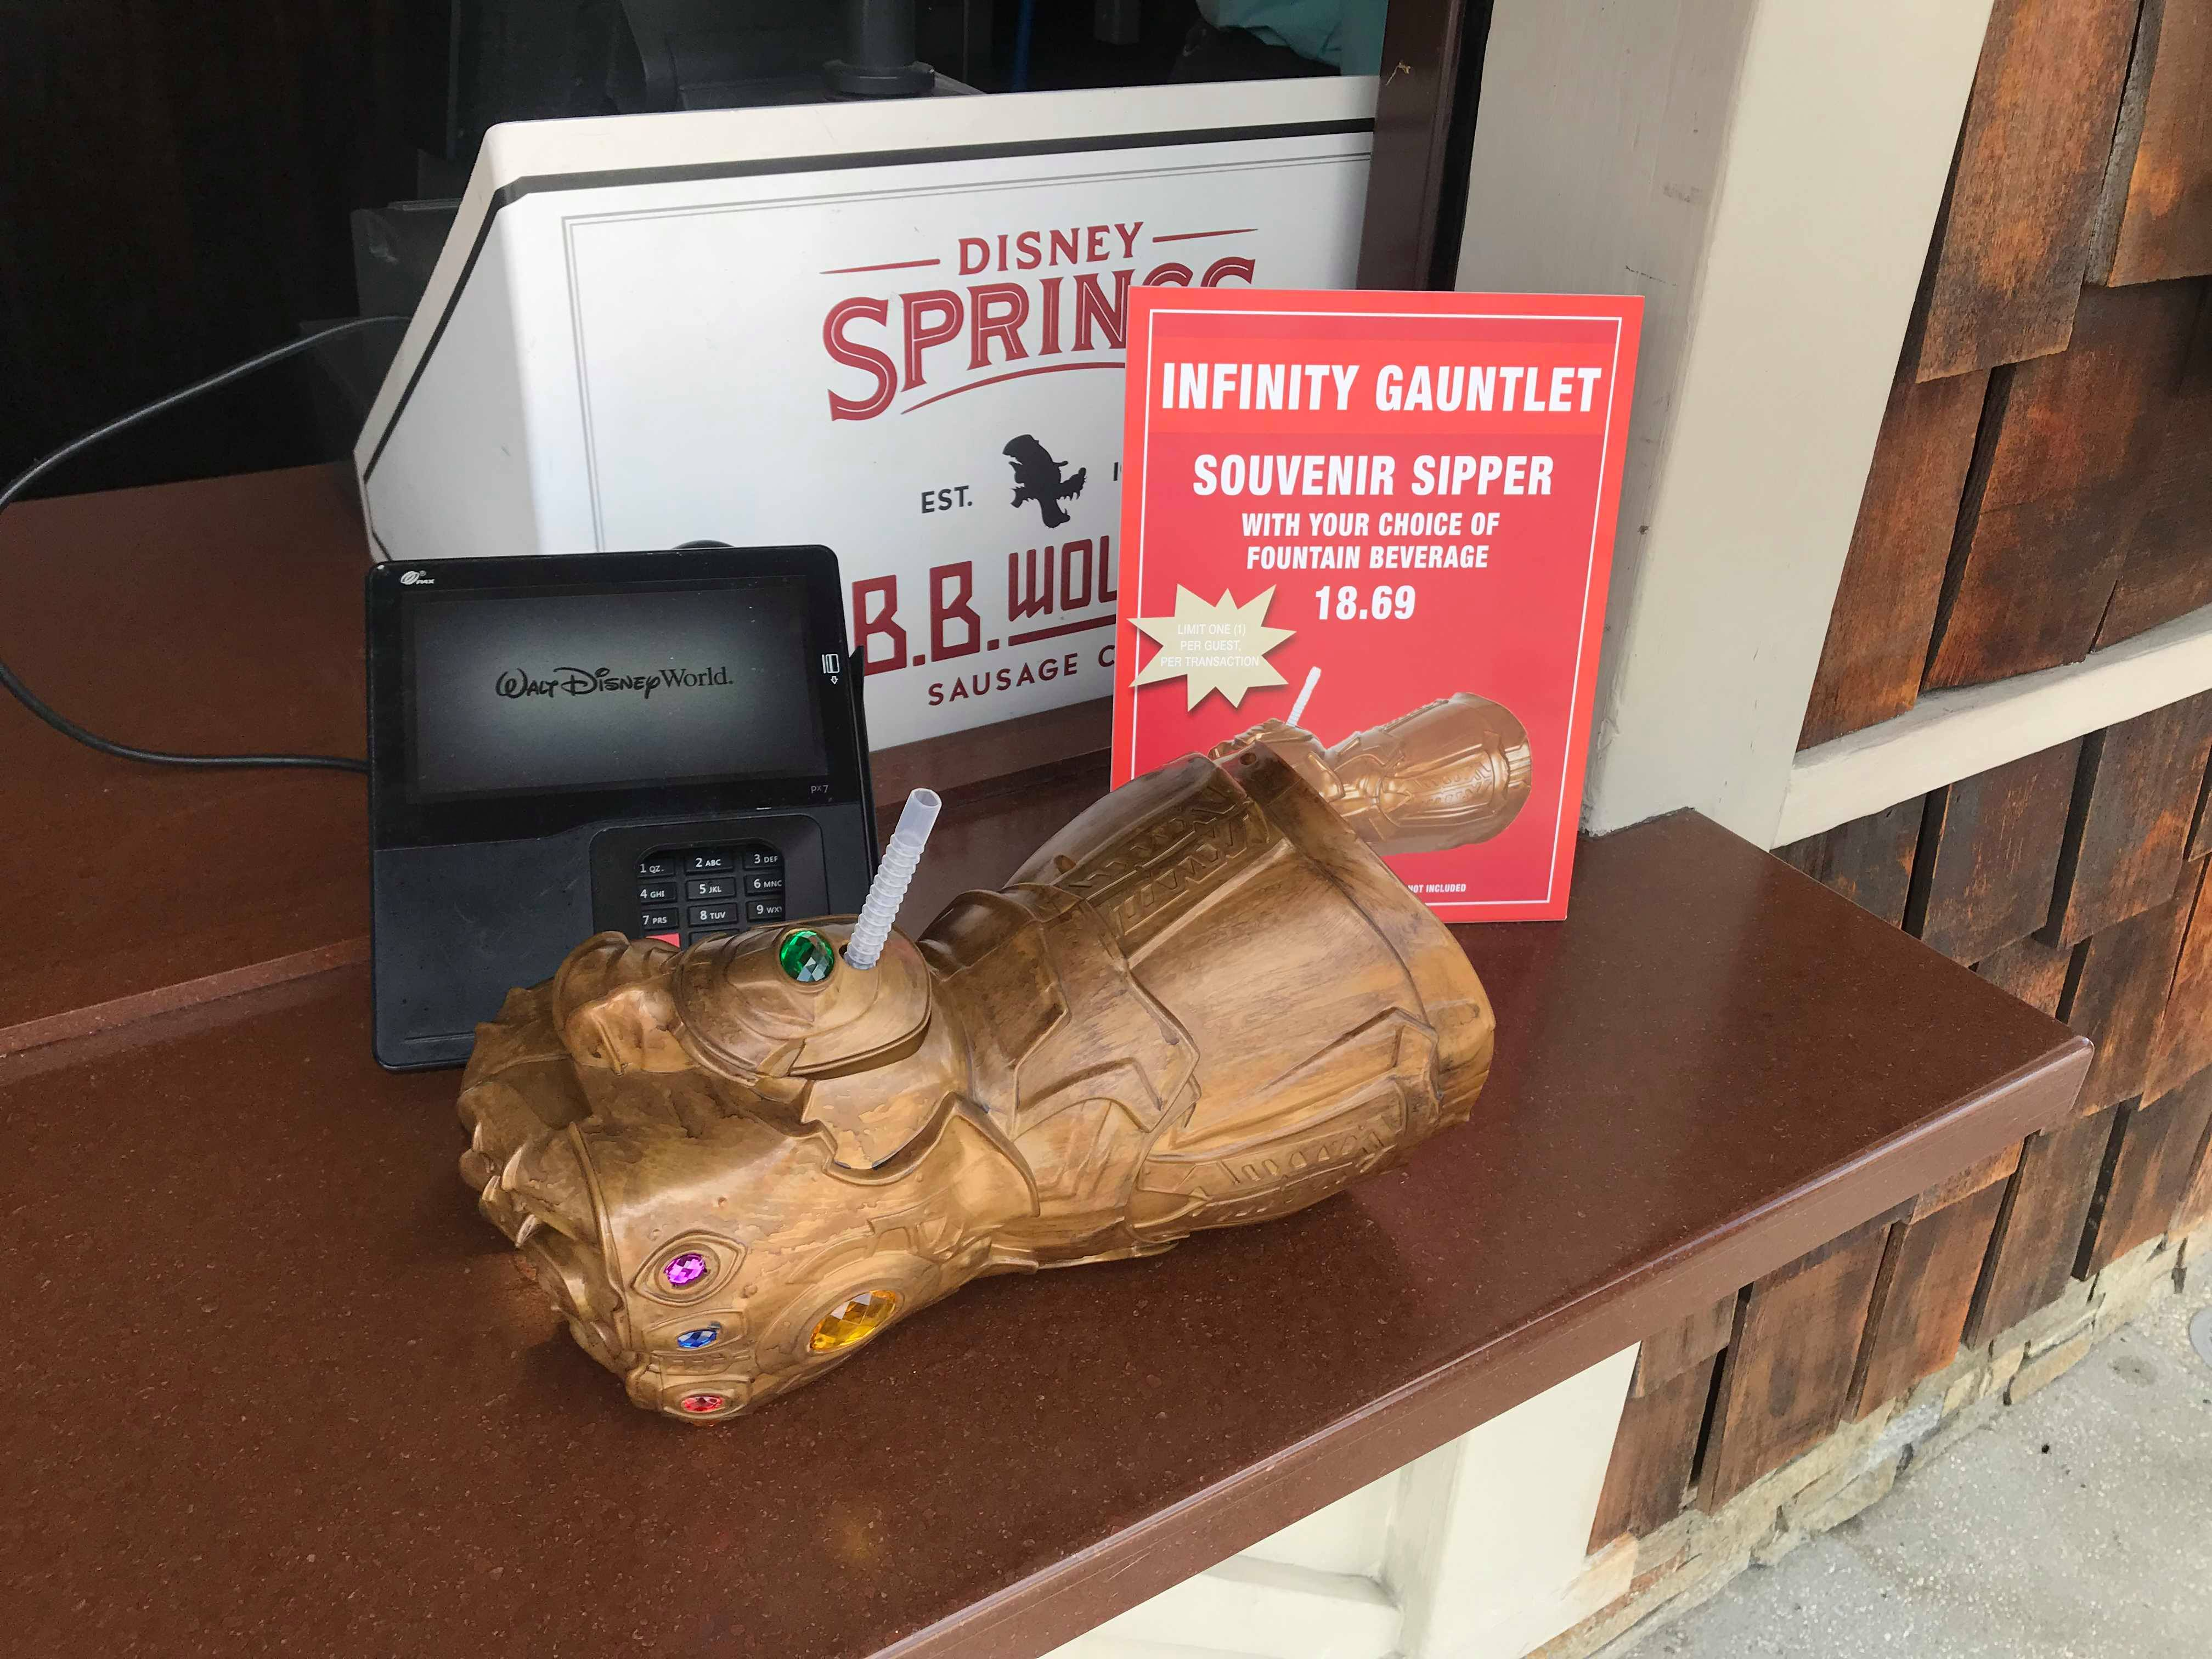 Back Thanos Infinity Bb Gauntlet Disney Springs At The Wolf In Is Sipper u13cTlFKJ